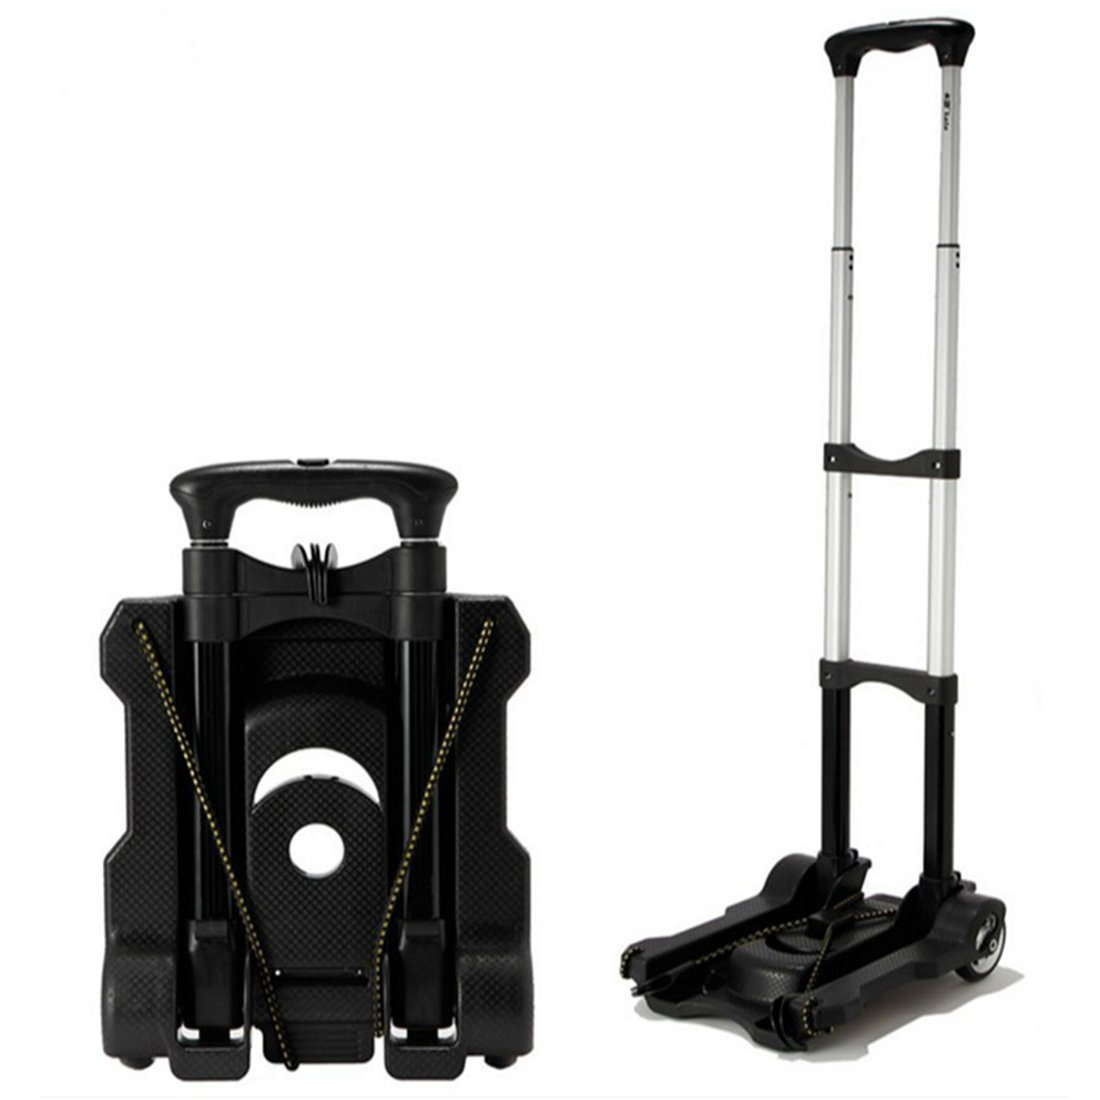 DS-ZF Aluminum alloy Heavy Duty Folding and Portable Luggage hand truck Cart